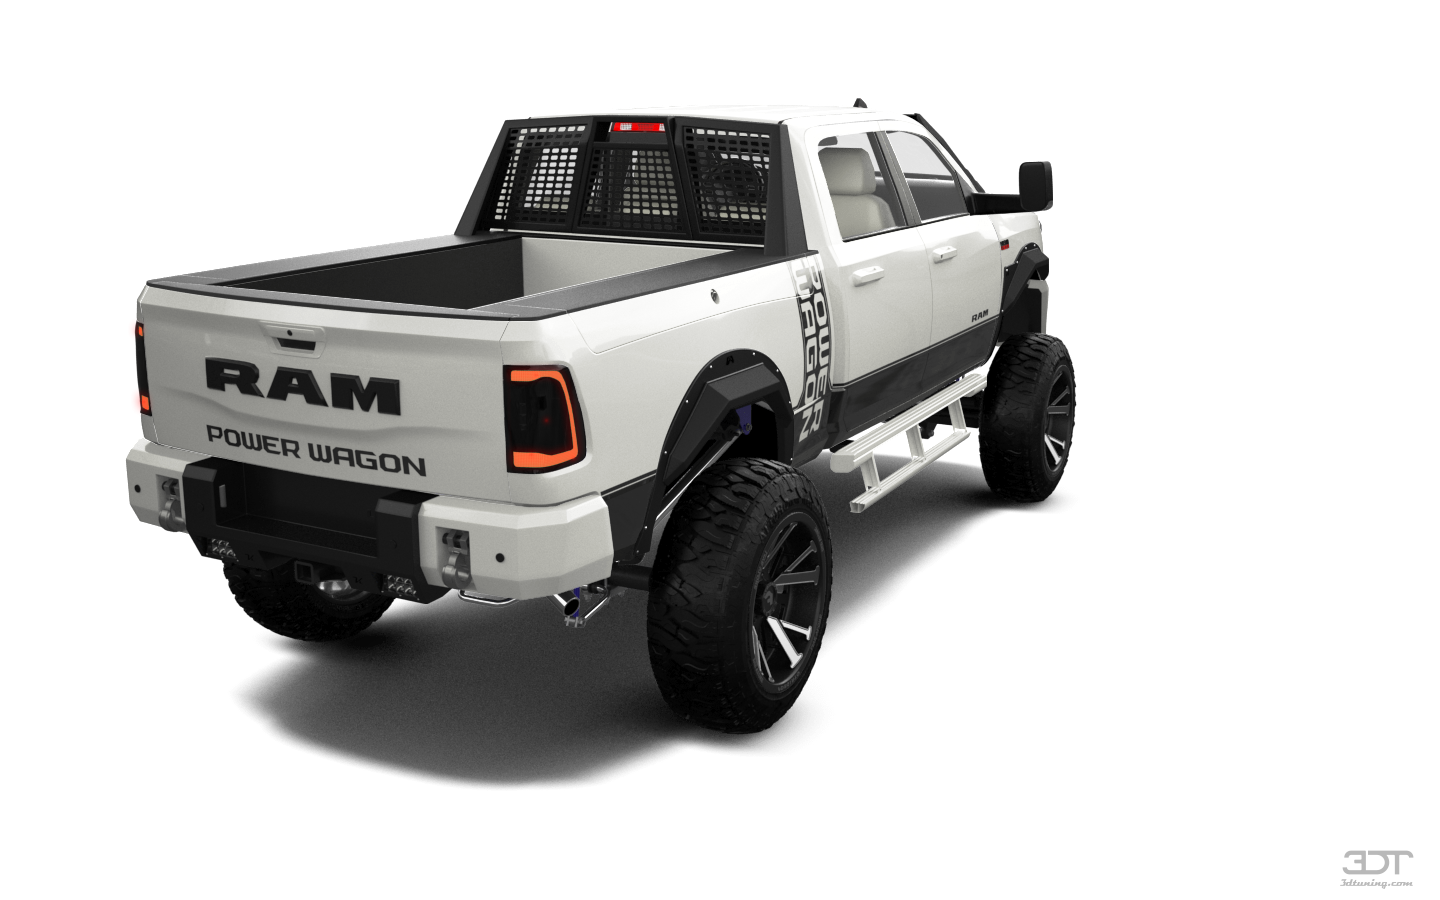 Dodge Ram 2500 4 Door pickup truck 2020 tuning